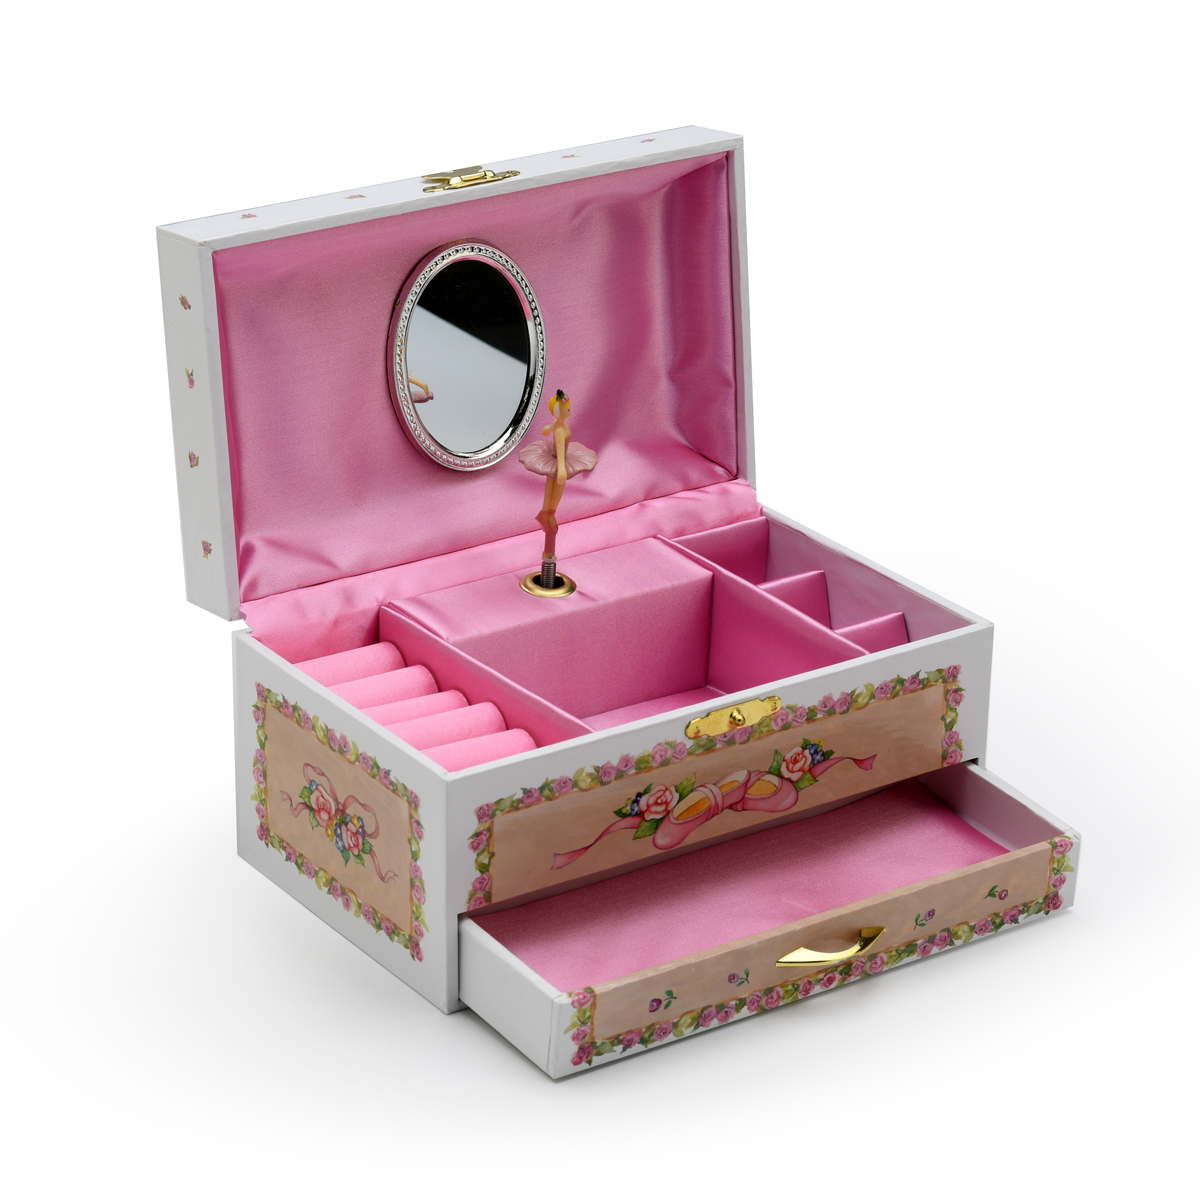 Adorable White and Pink Ballerina Musical Ballerina Jewelry Box with Drawer